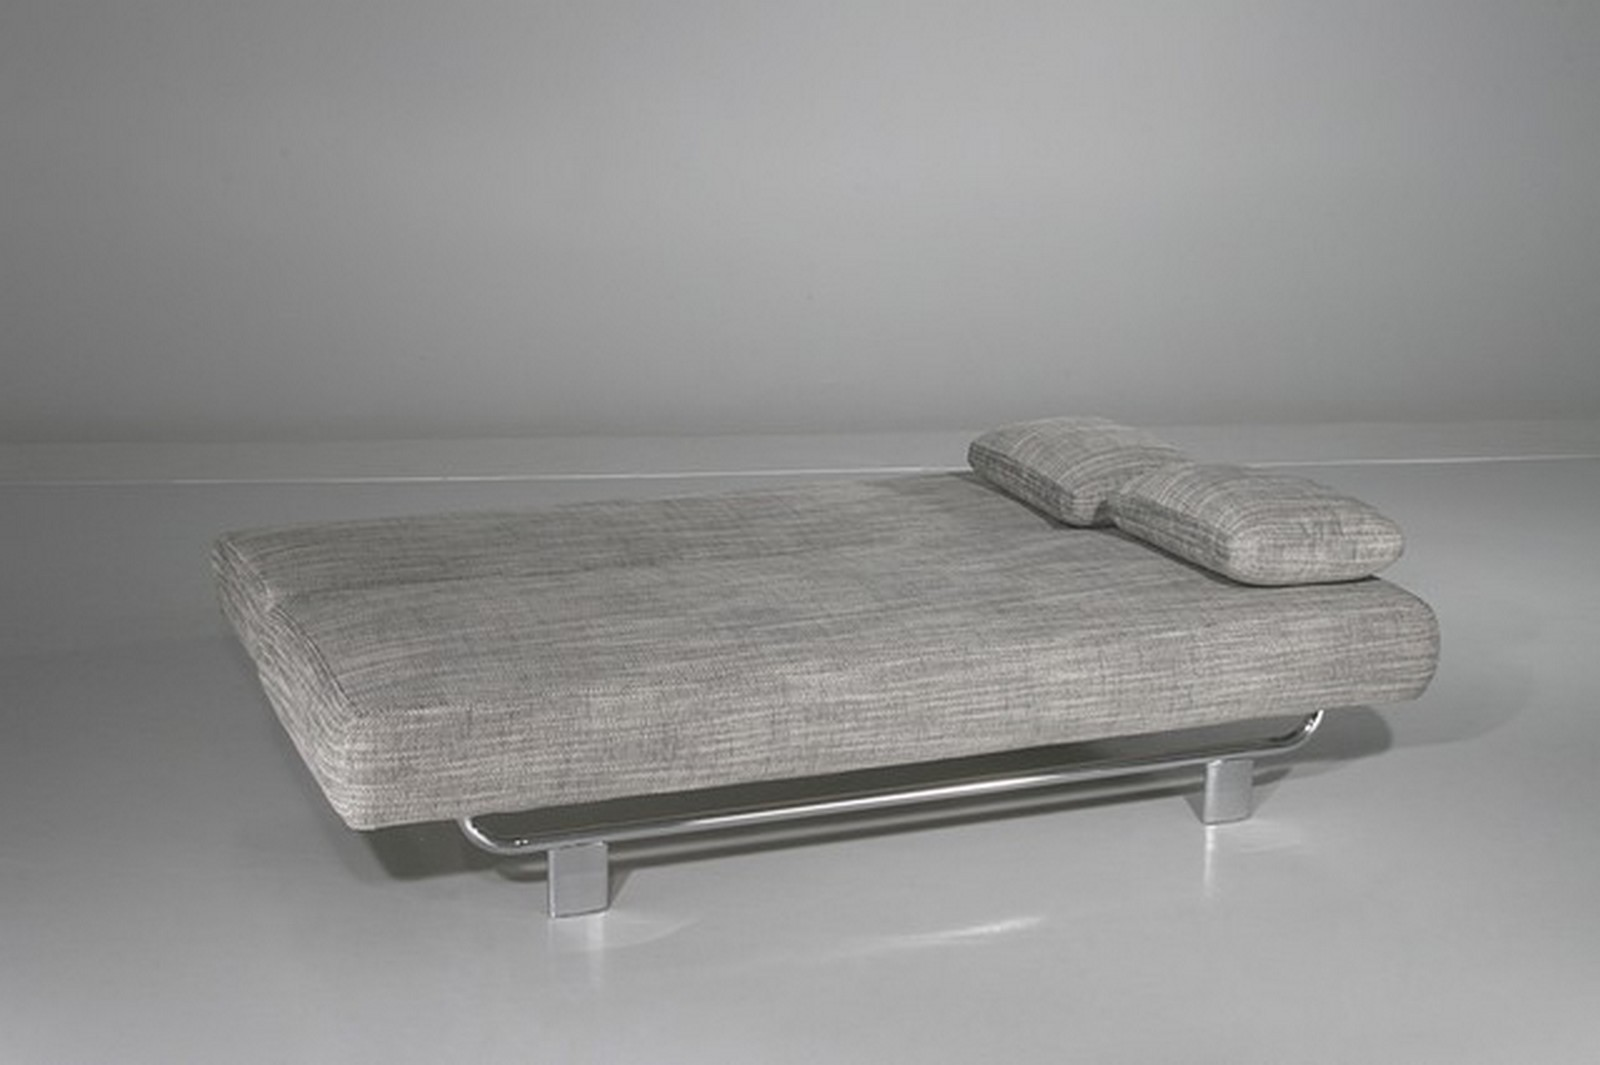 schlafsofa bettsofa funktionssofa mit federkern in webstoff sandy ebay. Black Bedroom Furniture Sets. Home Design Ideas